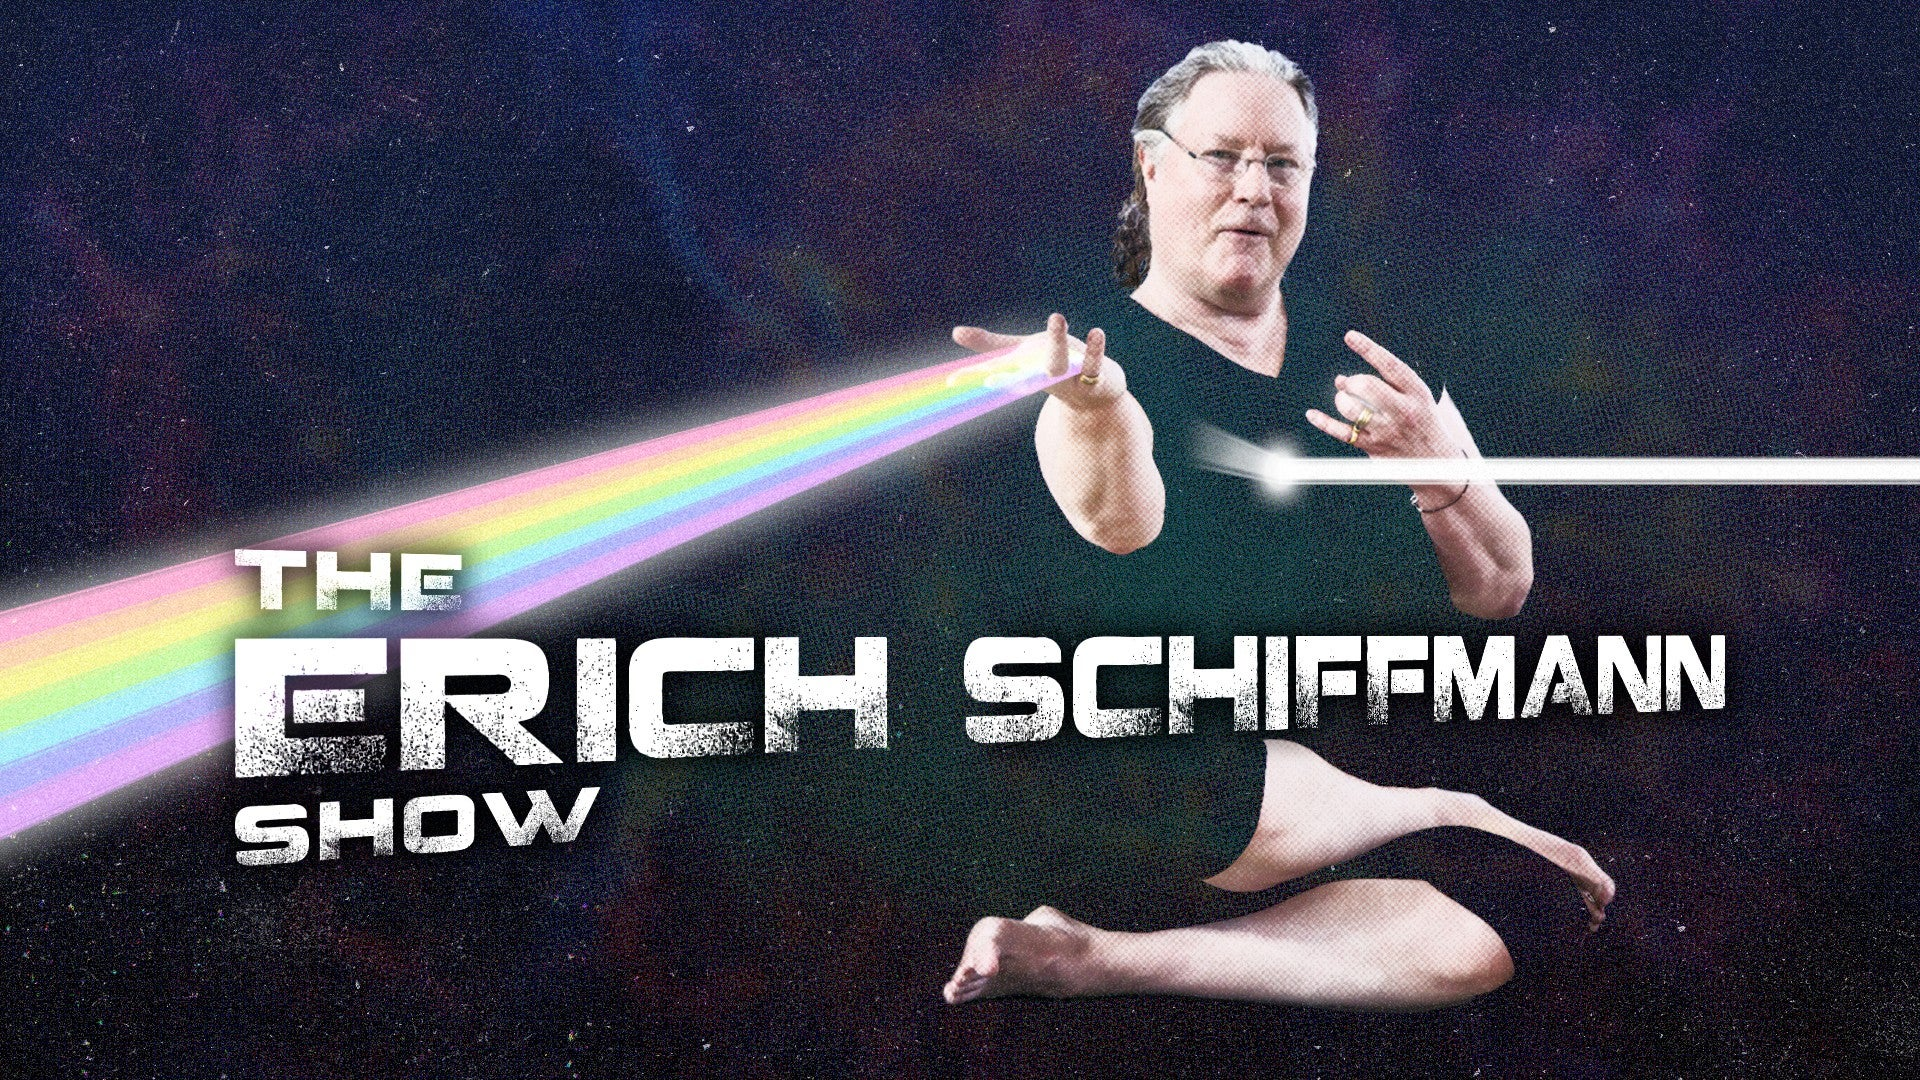 The Erich Schiffmann Show Artwork